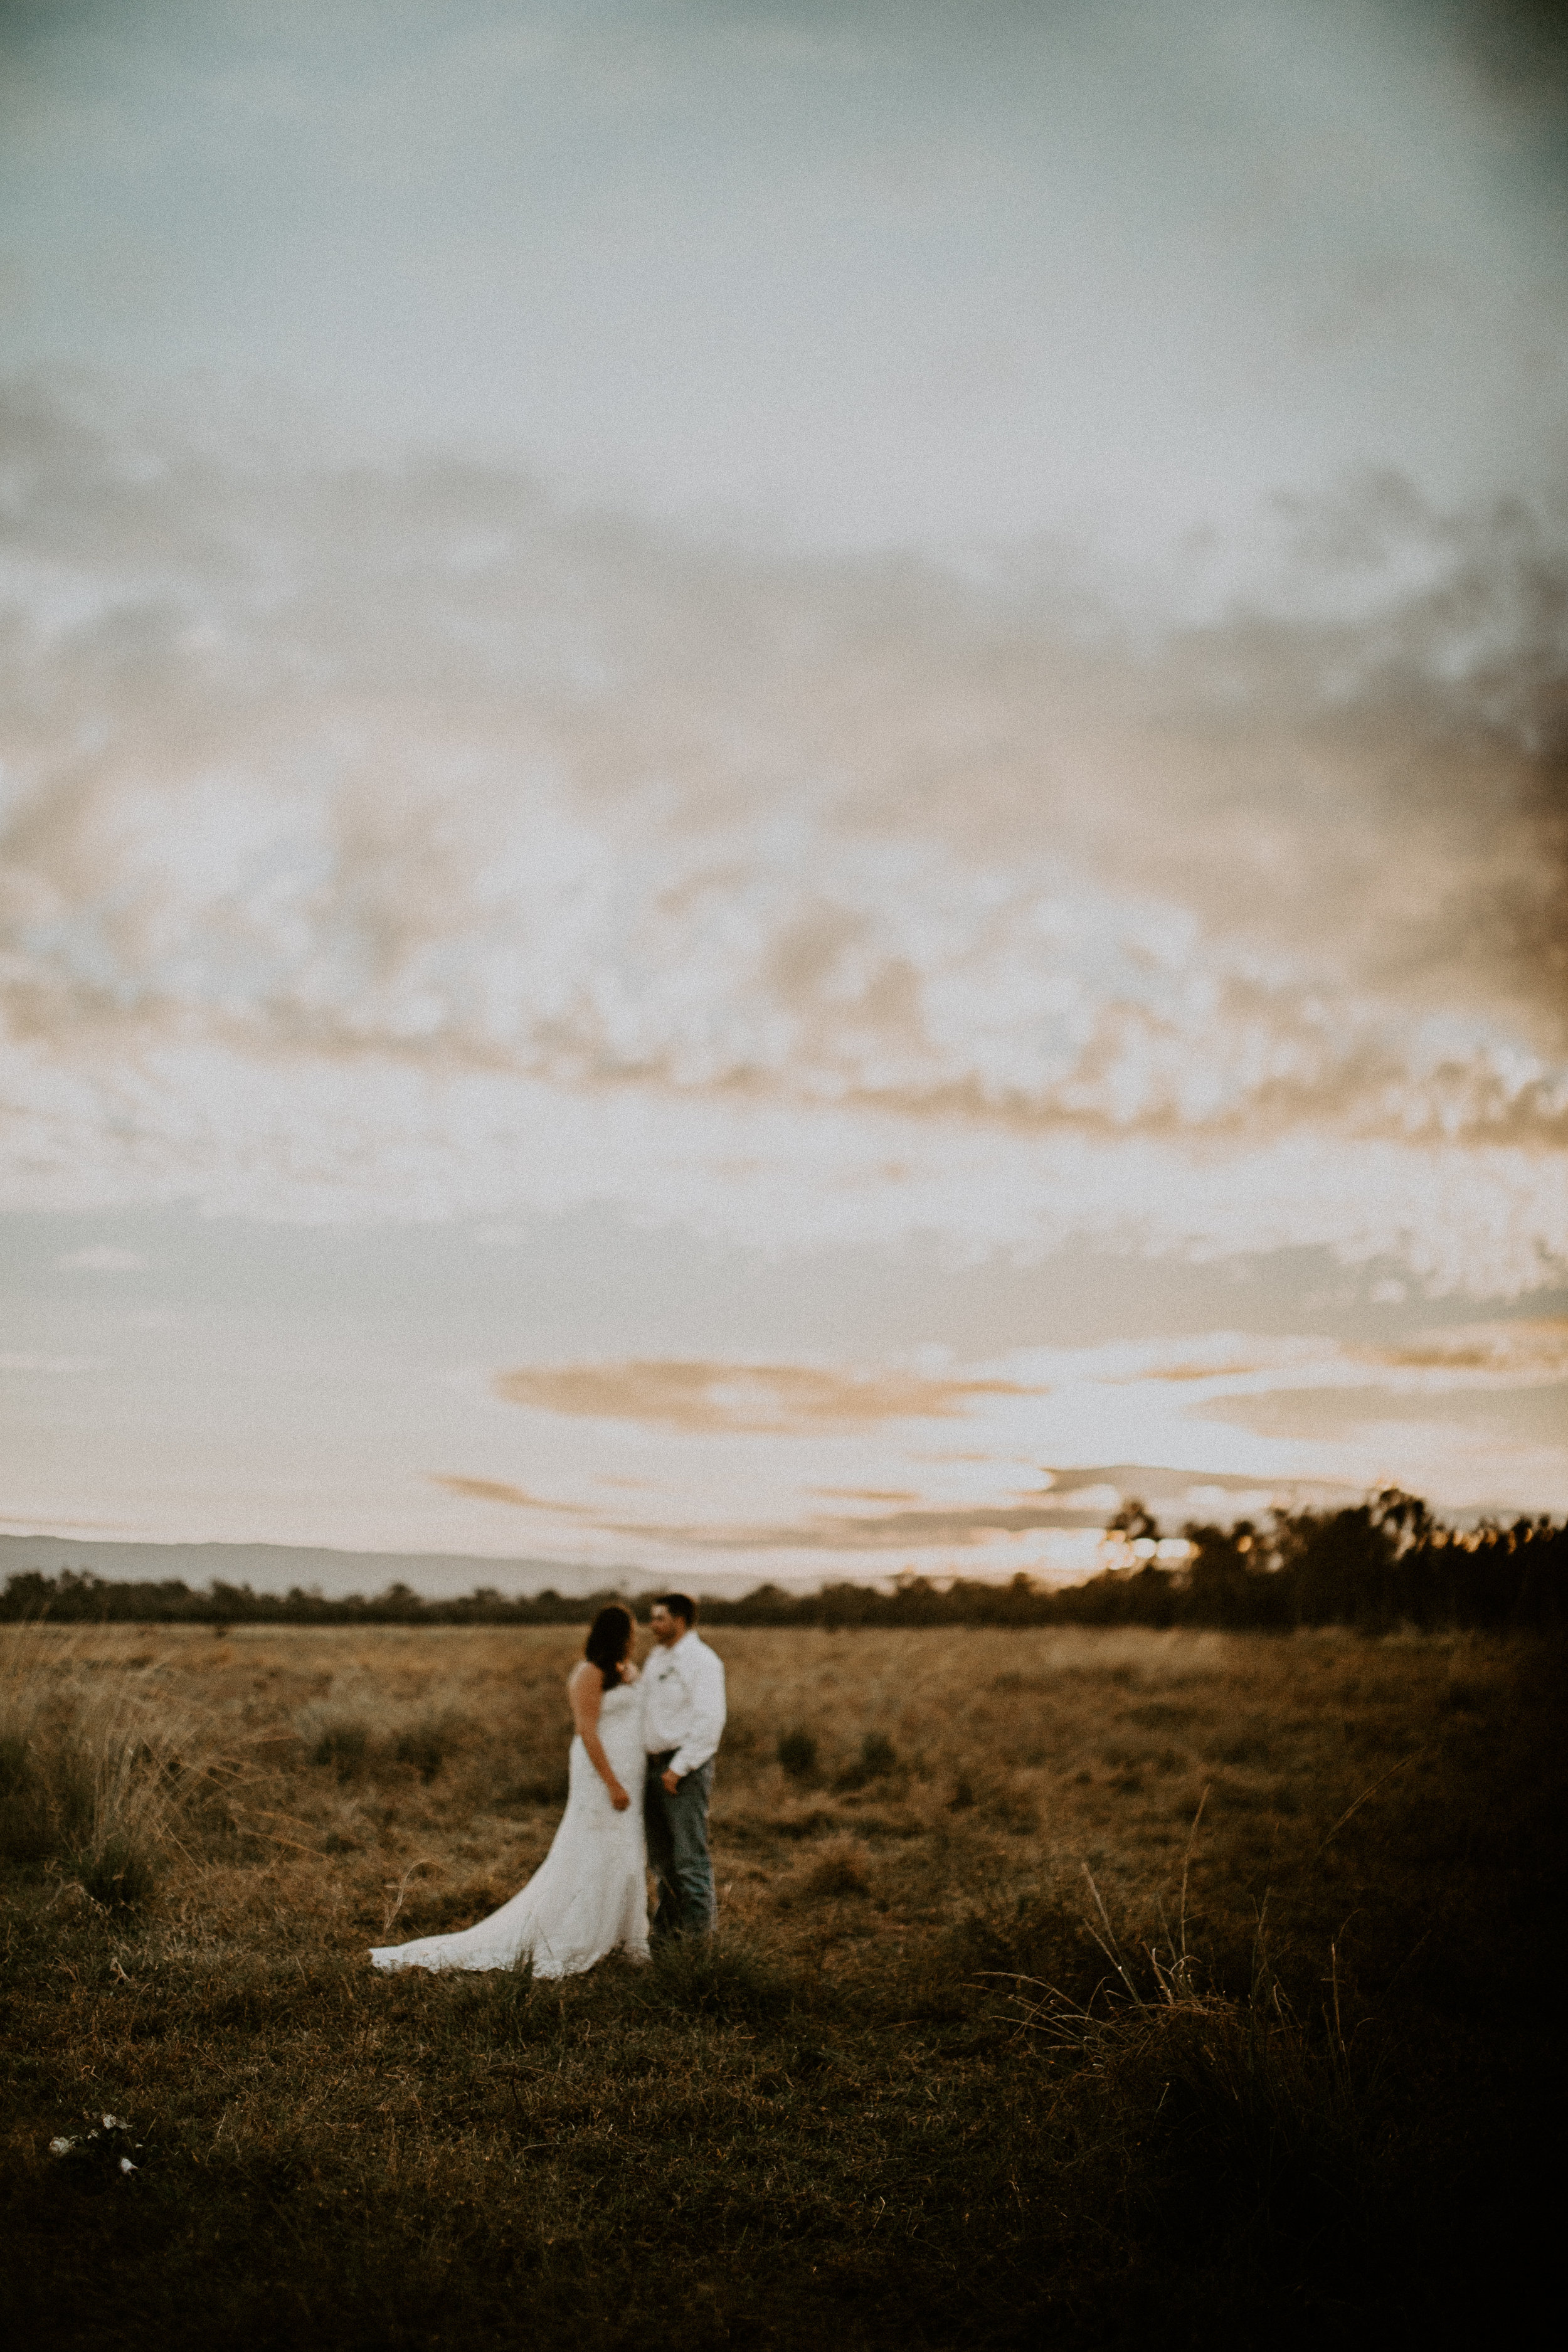 Camilla-French-Photographer-Elopement-Wedding-Intimate-Couples-Families-Maternity-Townsville-Cairns-Queensland-Australia.jpg